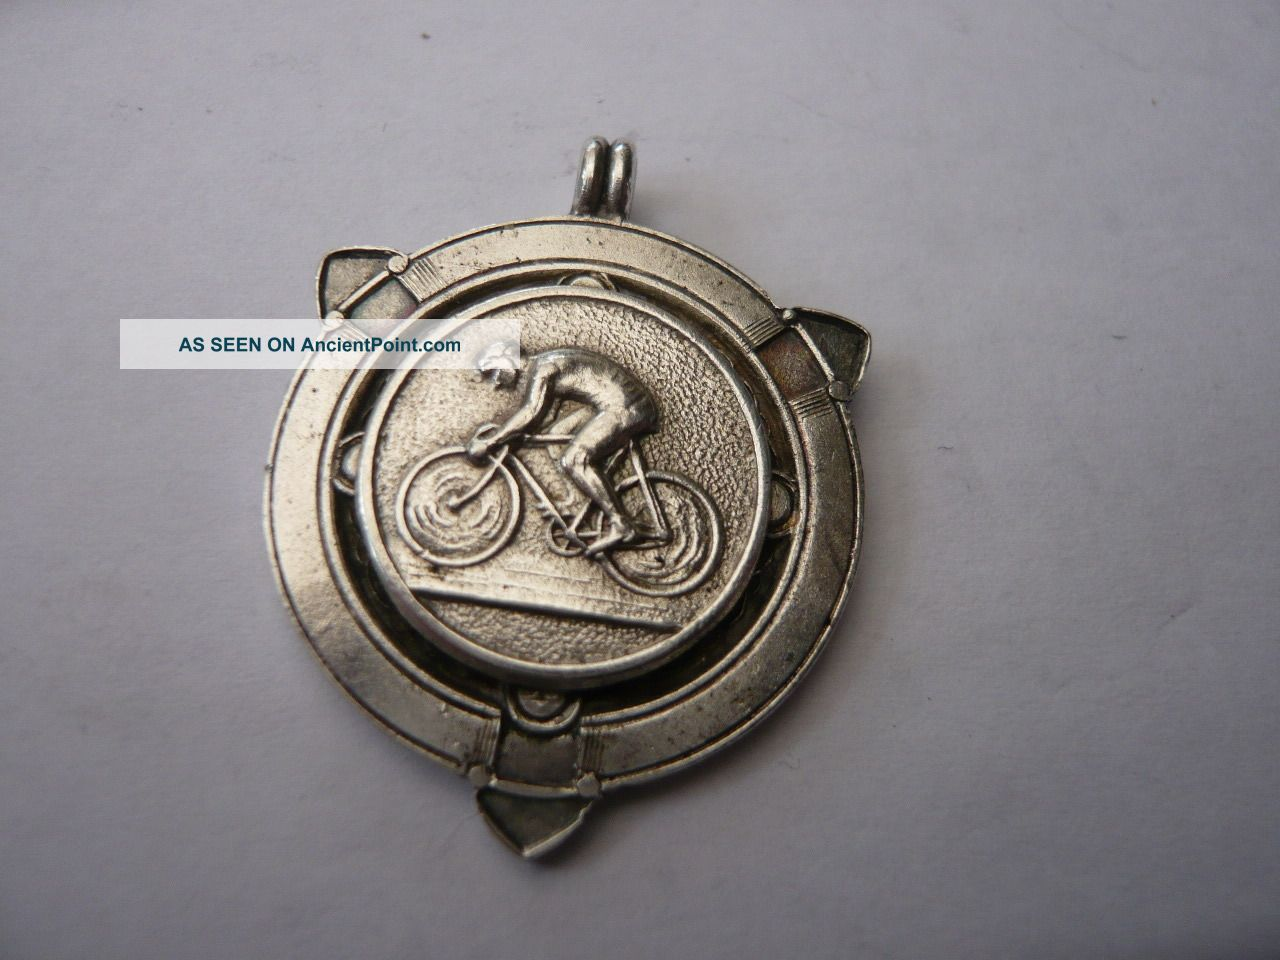 Vintage Old Sterling Silver Pocket Watch Chain Fob Medal Cycle Bikes Luton 1941 Pocket Watches/ Chains/ Fobs photo